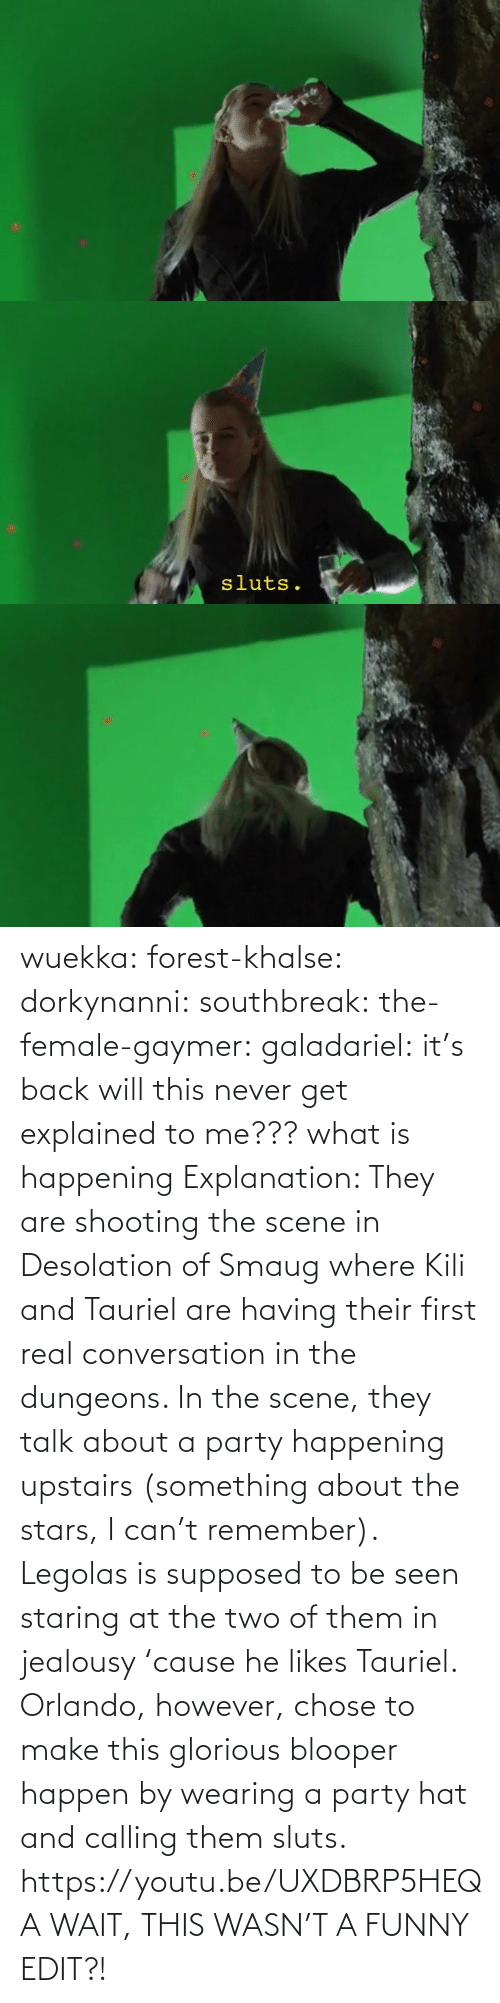 amp: wuekka: forest-khalse:   dorkynanni:  southbreak:   the-female-gaymer:   galadariel:  it's back   will this never get explained to me???    what is happening    Explanation:  They are shooting the scene in Desolation of Smaug where Kili and Tauriel are having their first real conversation in the dungeons.  In the scene, they talk about a party happening upstairs (something about the stars, I can't remember). Legolas is supposed to be seen staring at the two of them in jealousy 'cause he likes Tauriel.  Orlando, however, chose to make this glorious blooper happen by wearing a party hat and calling them sluts.    https://youtu.be/UXDBRP5HEQA    WAIT, THIS WASN'T A FUNNY EDIT?!